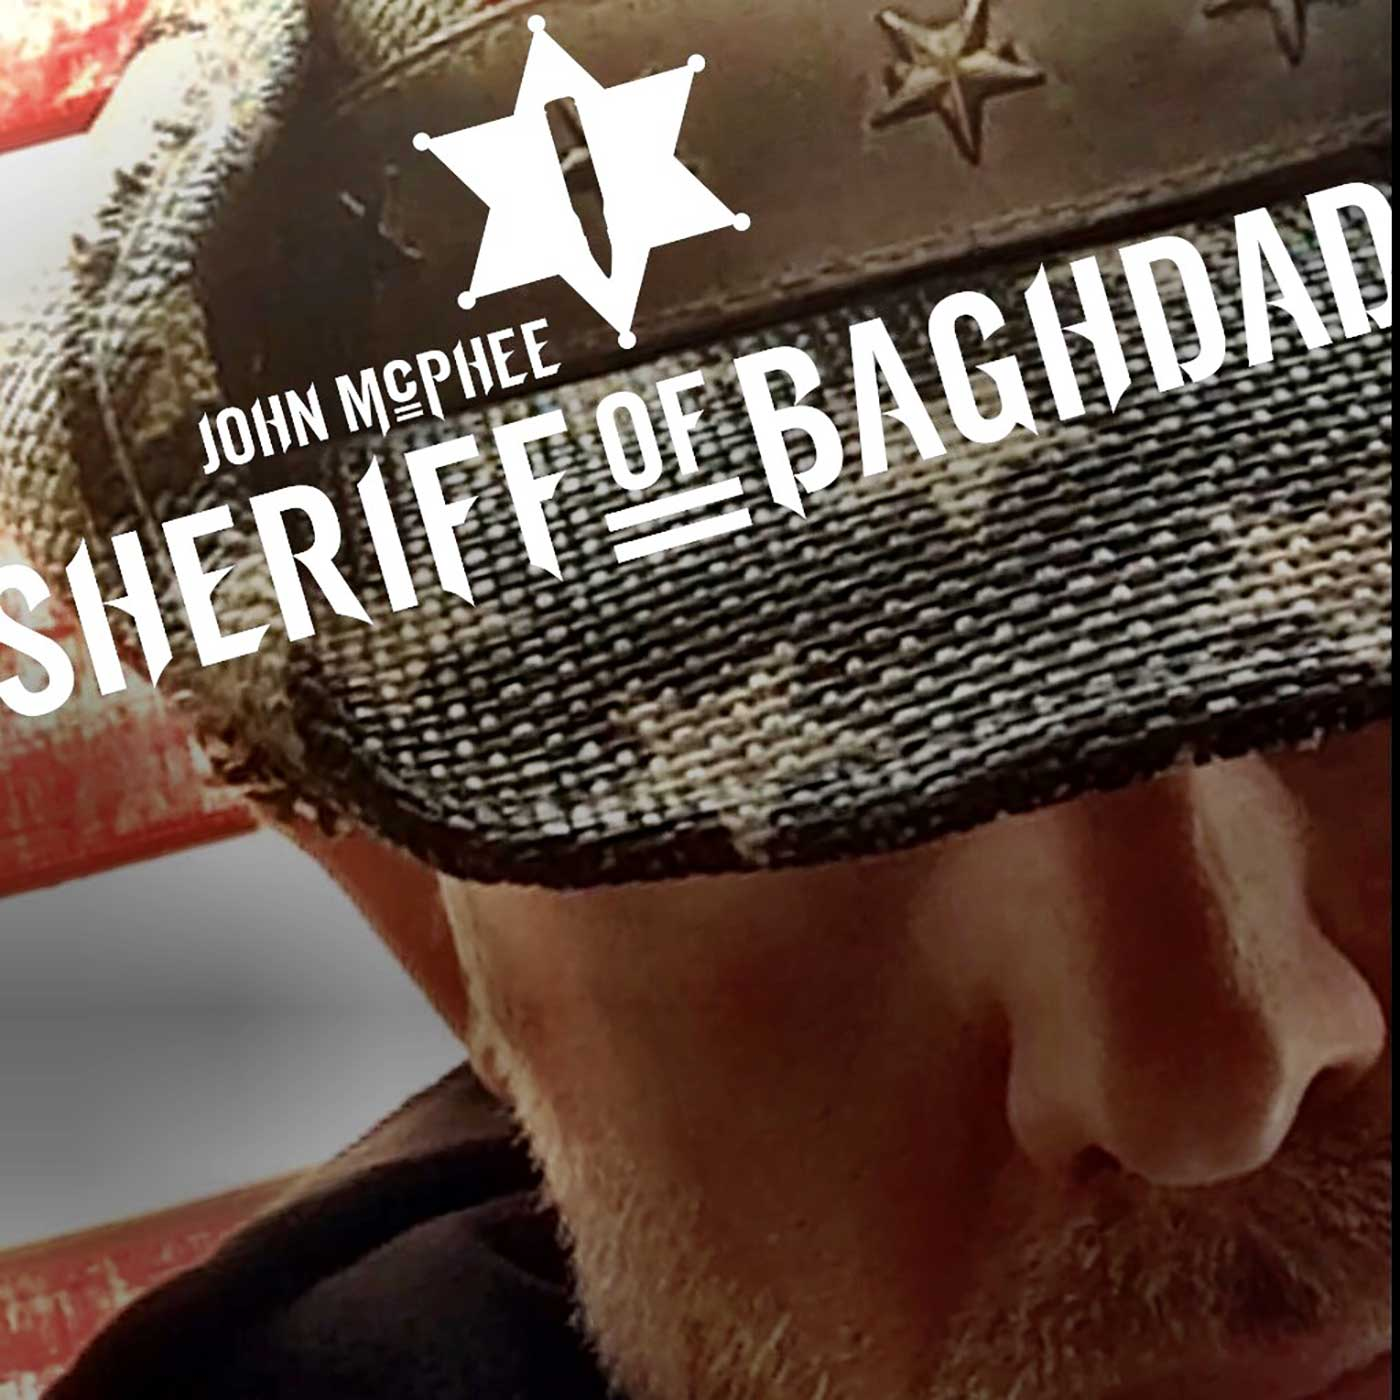 Sheriff of Baghdad Podcast show art